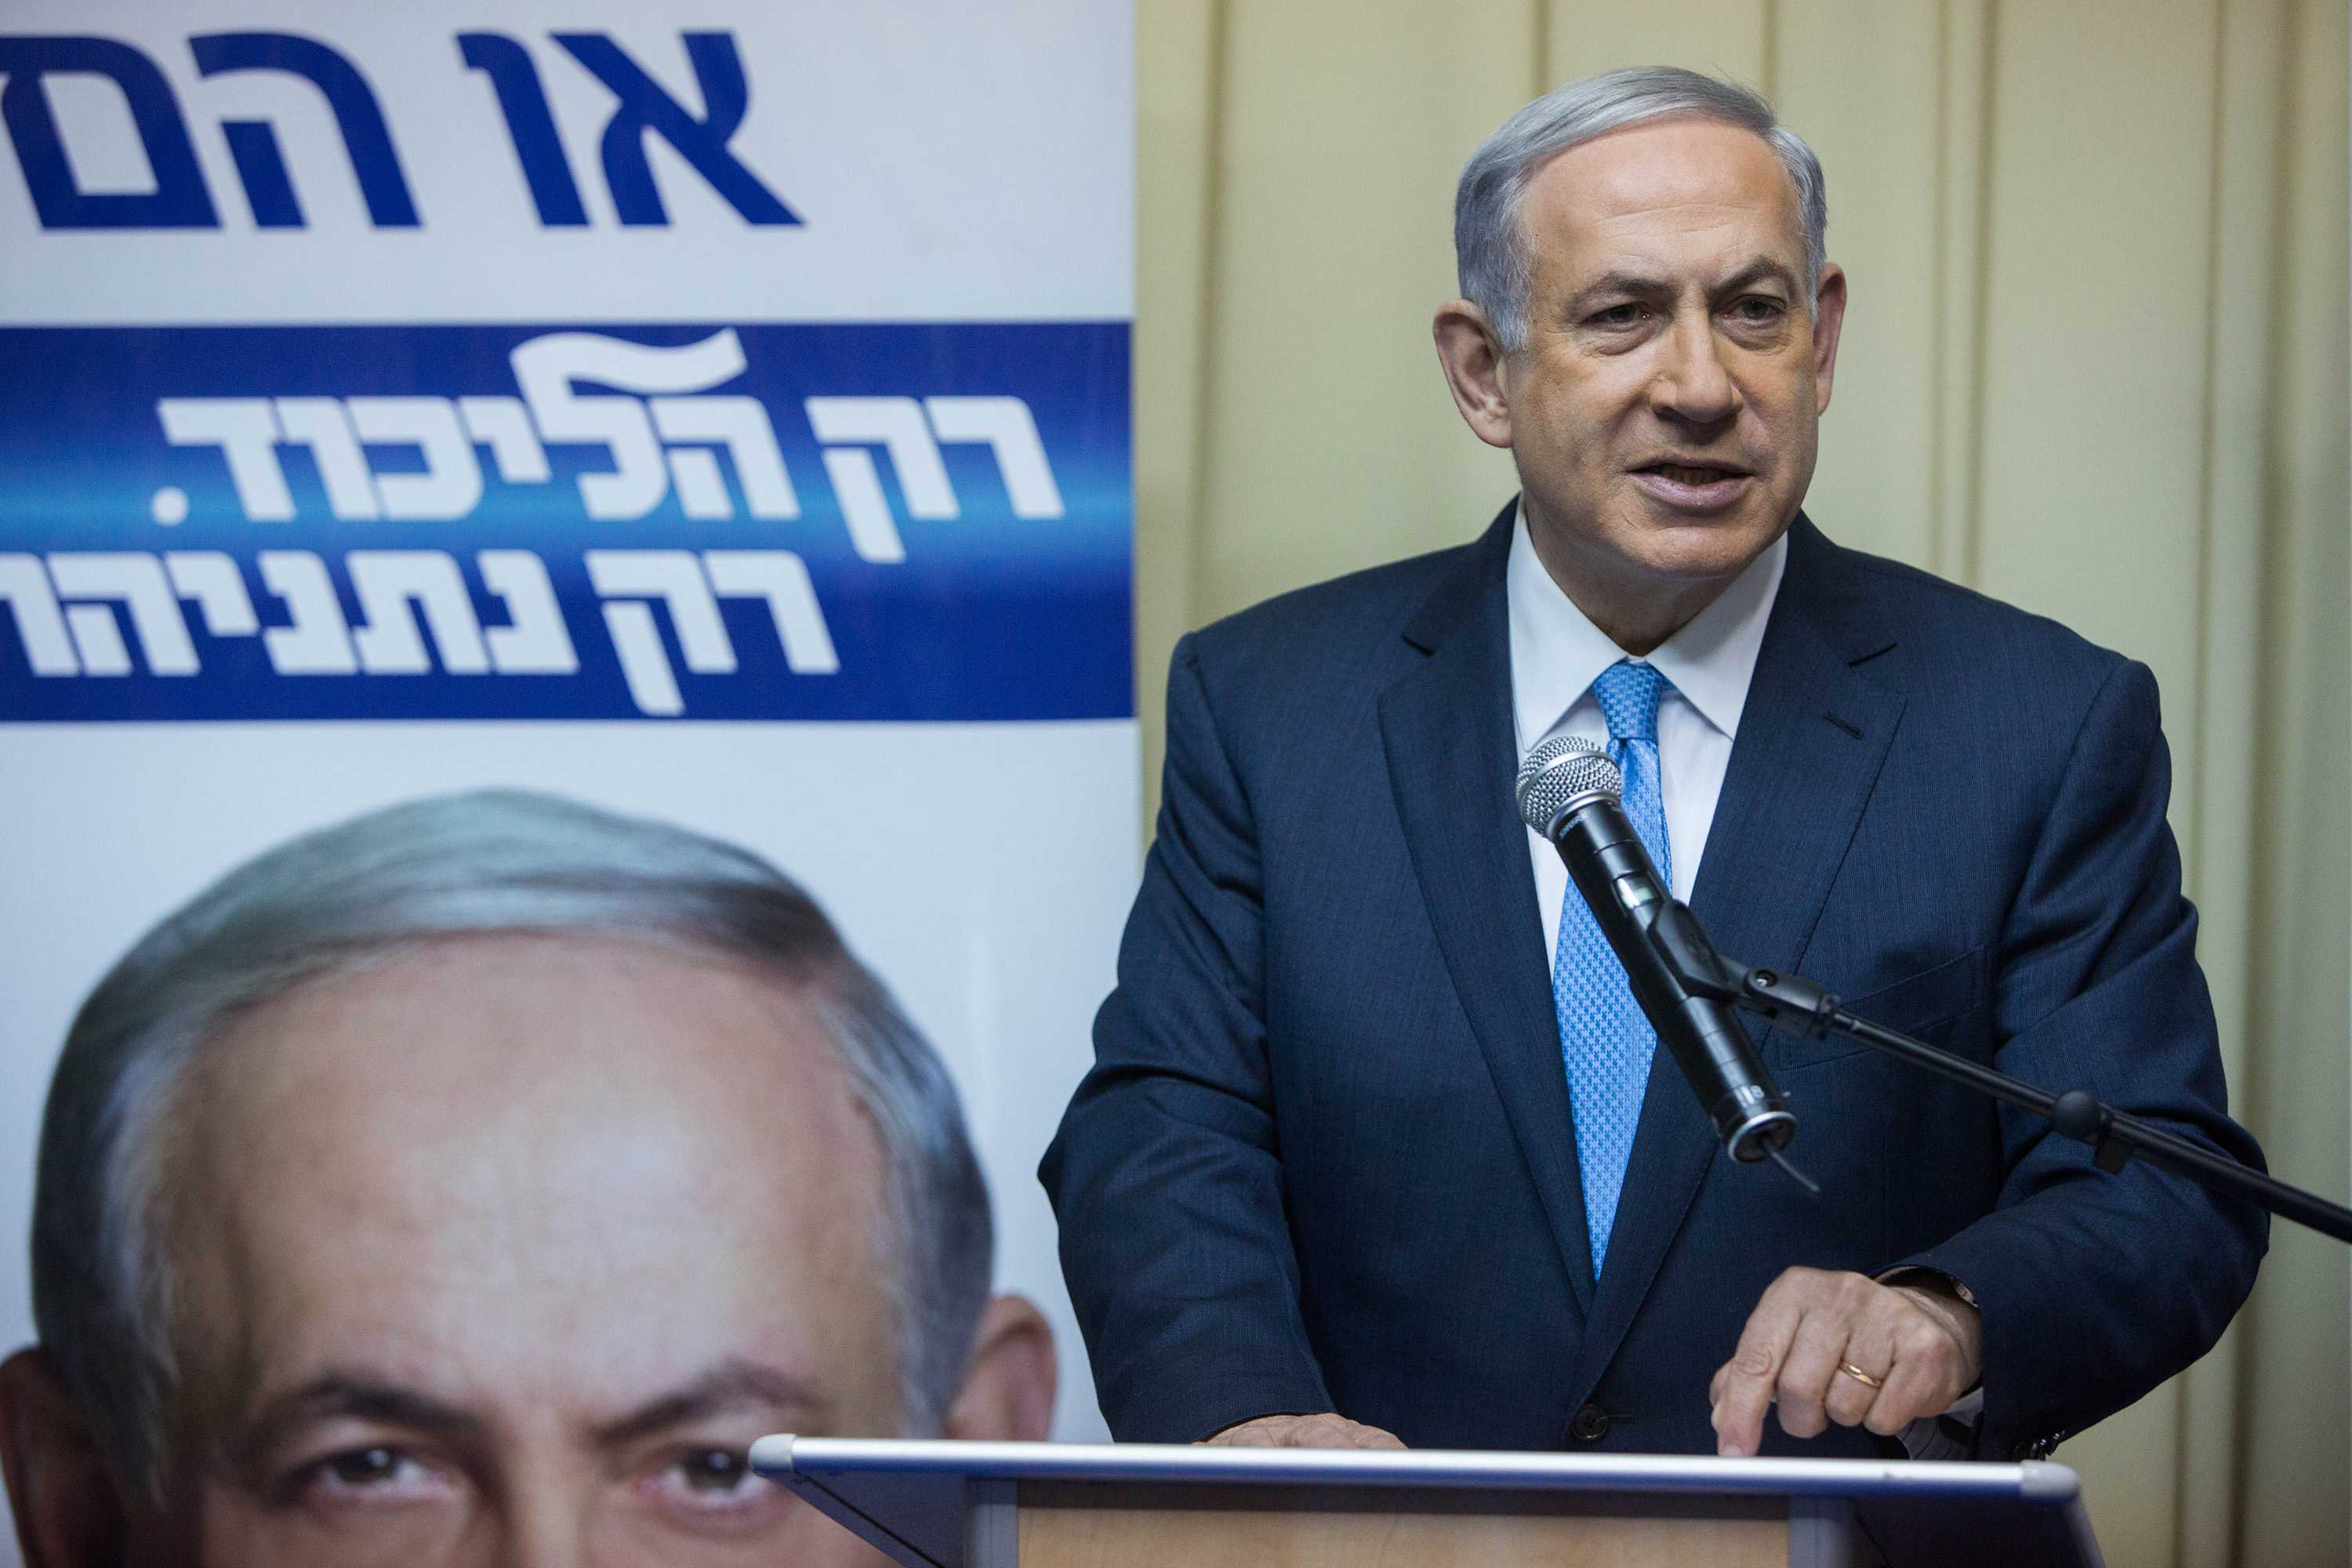 Benjamin Netanyahu's party stays in power after winning Israeli elections